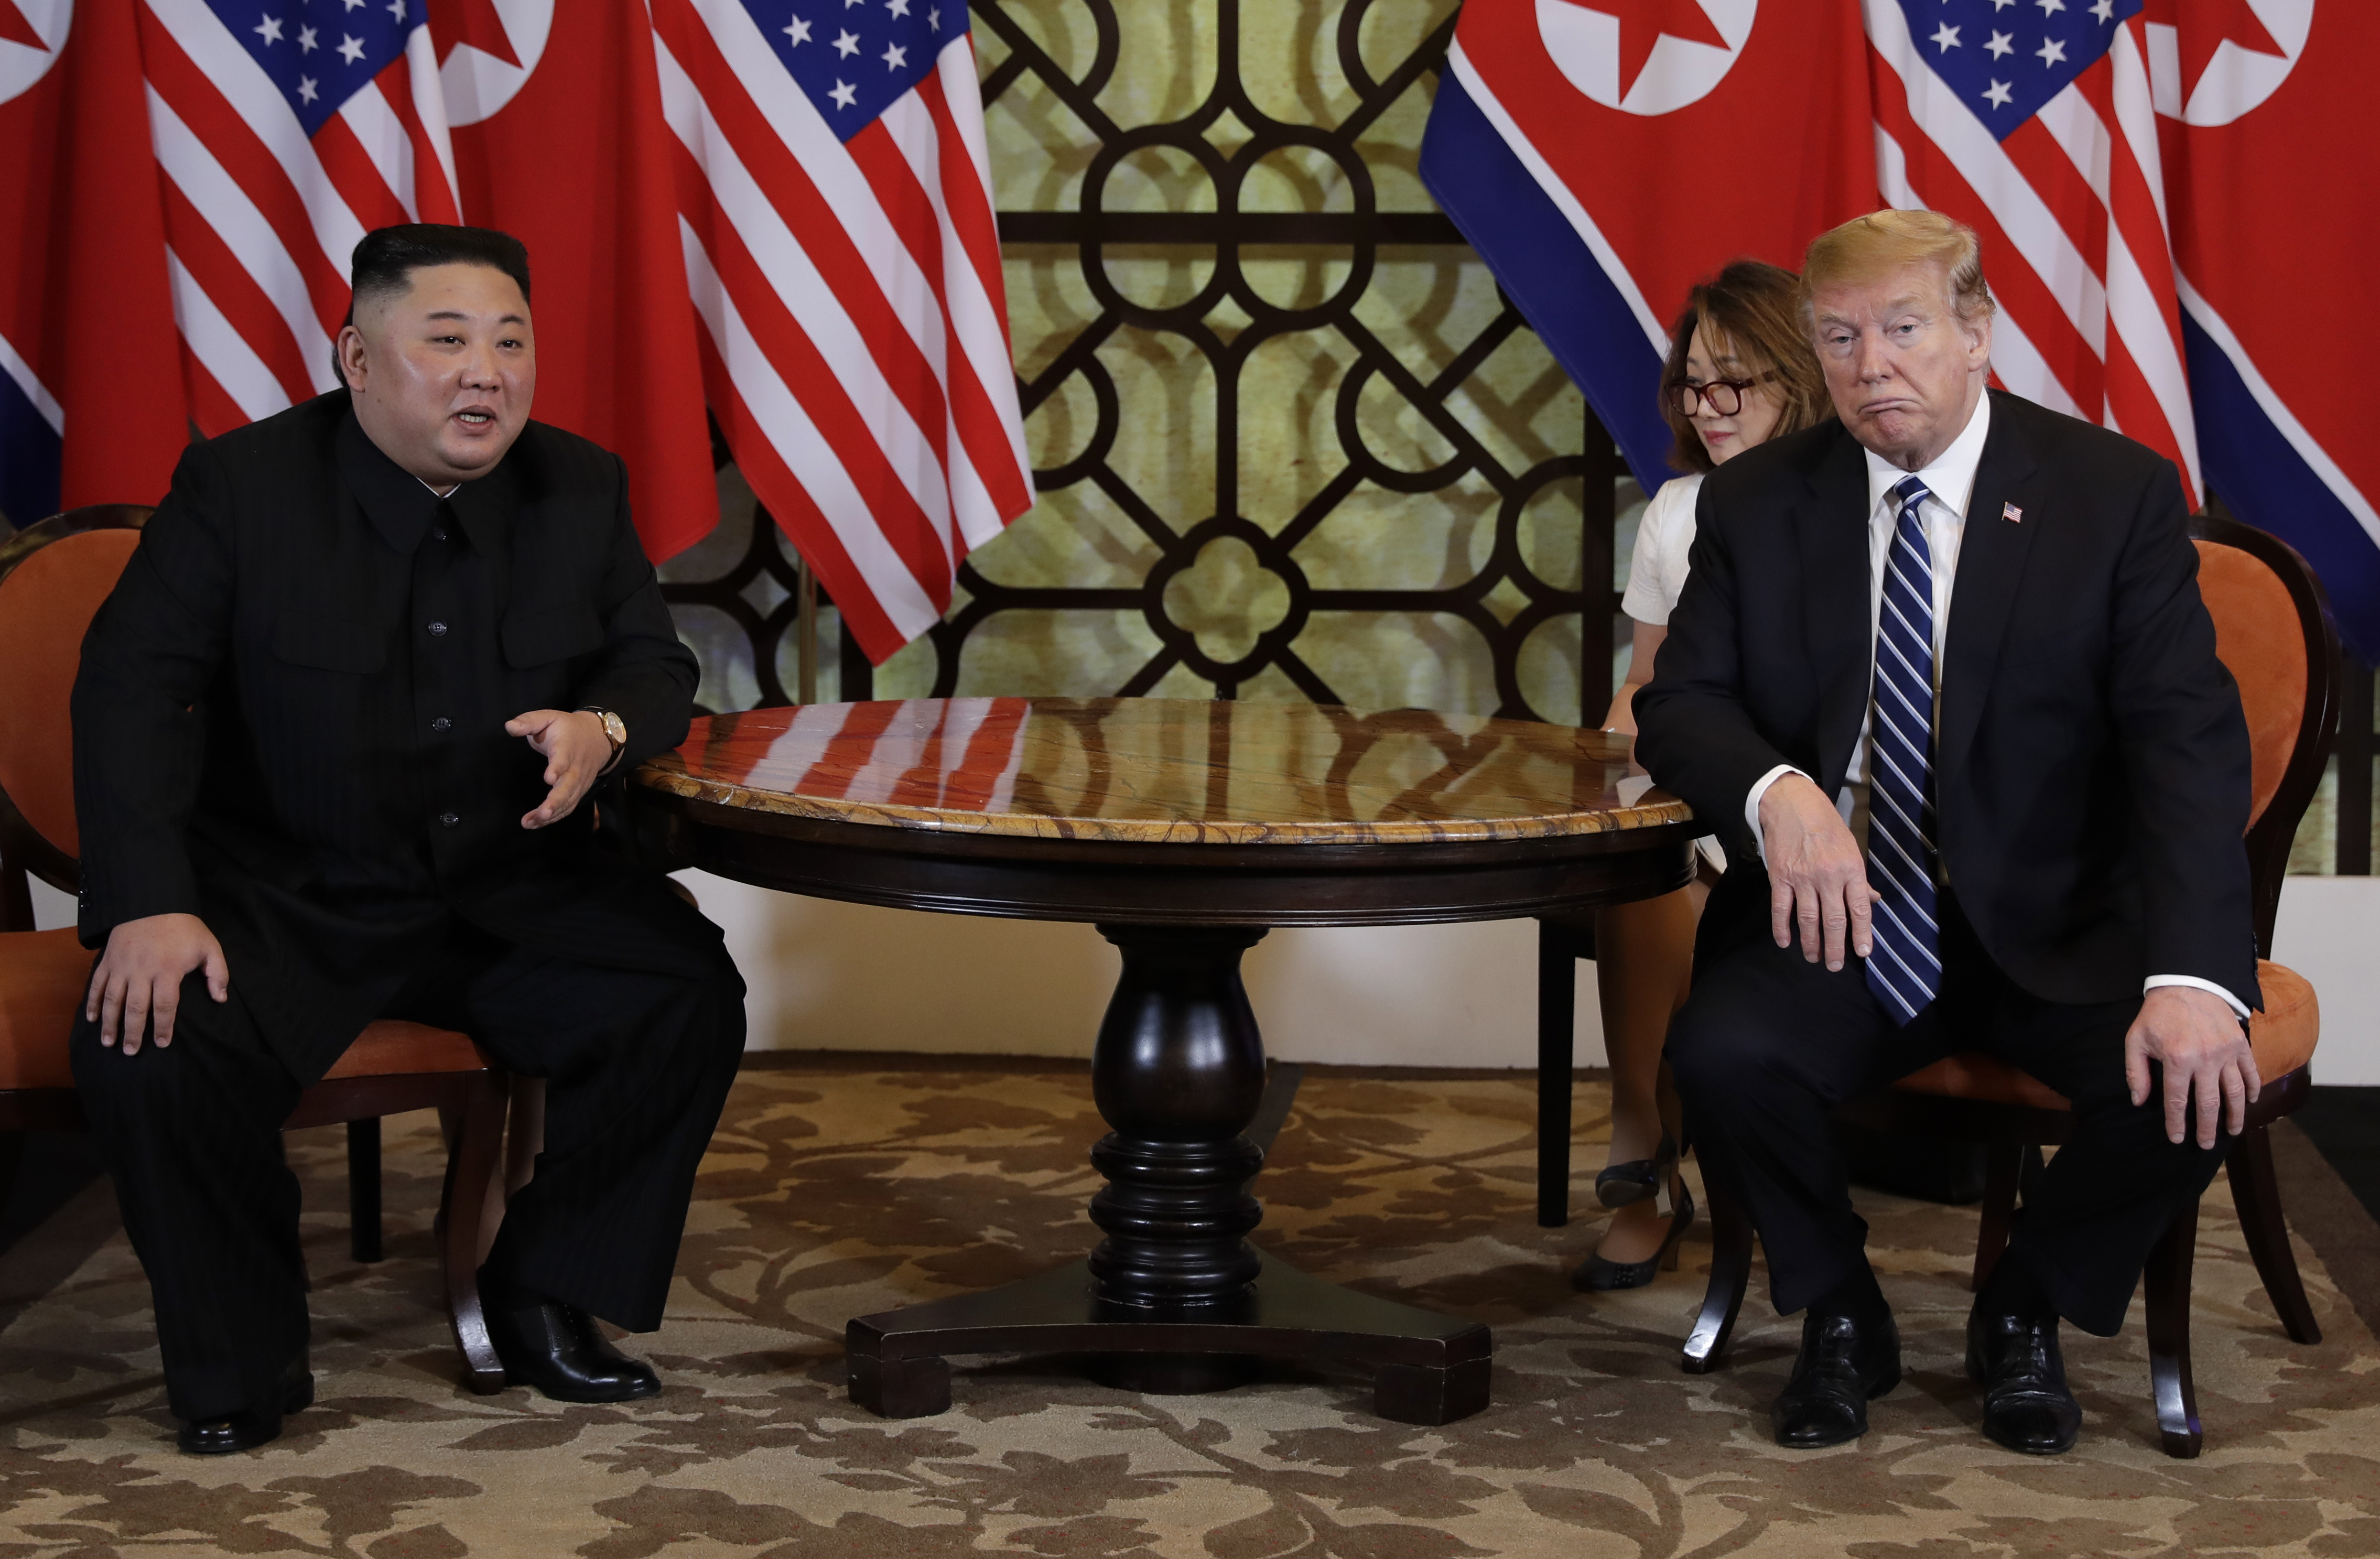 Trump-Kim Summit Ends with No Deal, but Diplomacy Is a Long Process